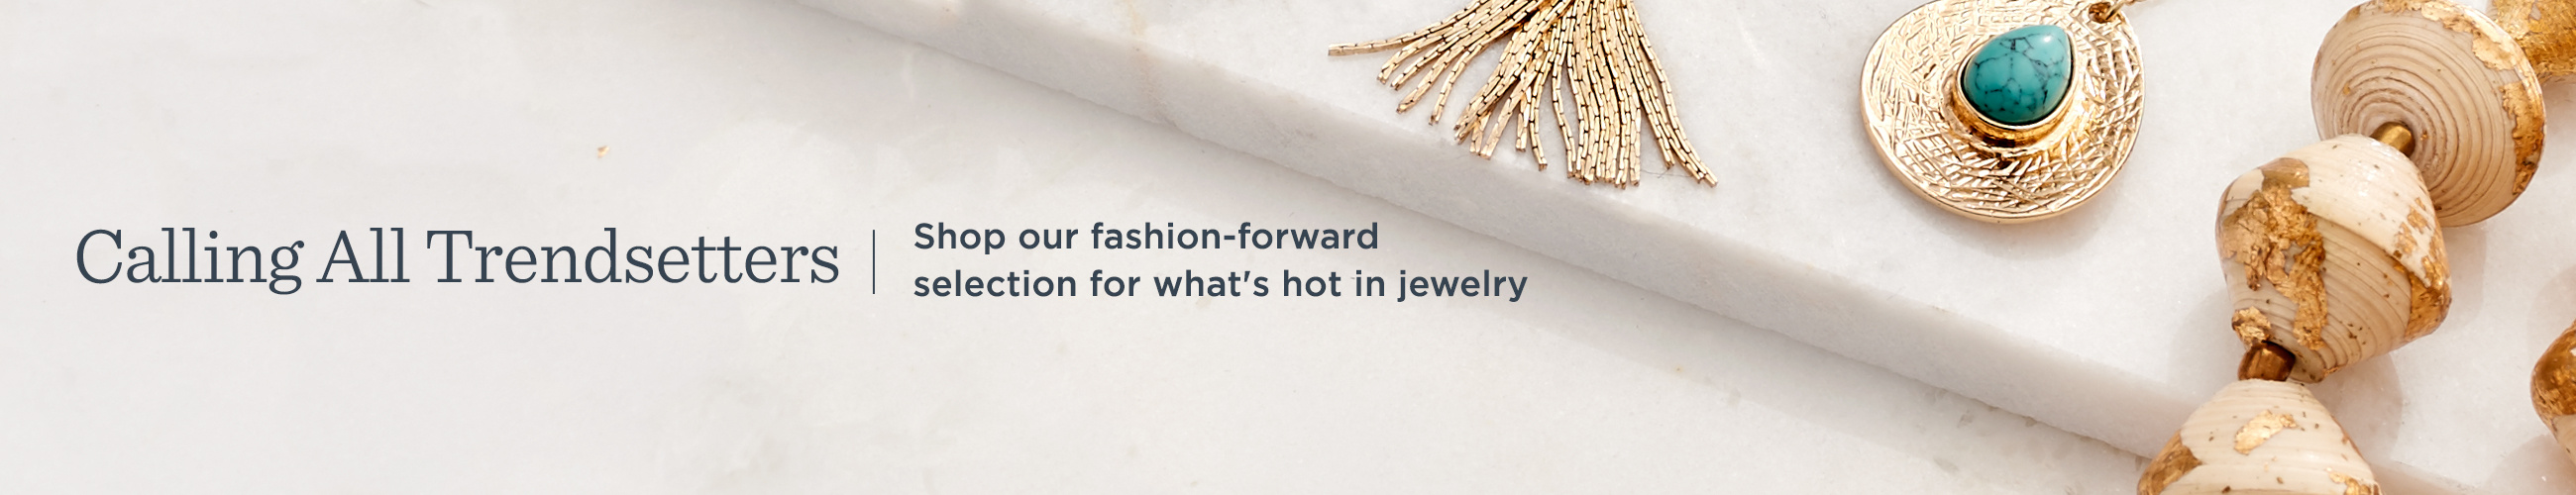 Calling All Trendsetters. Shop our fashion-forward selection for what's hot in jewelry